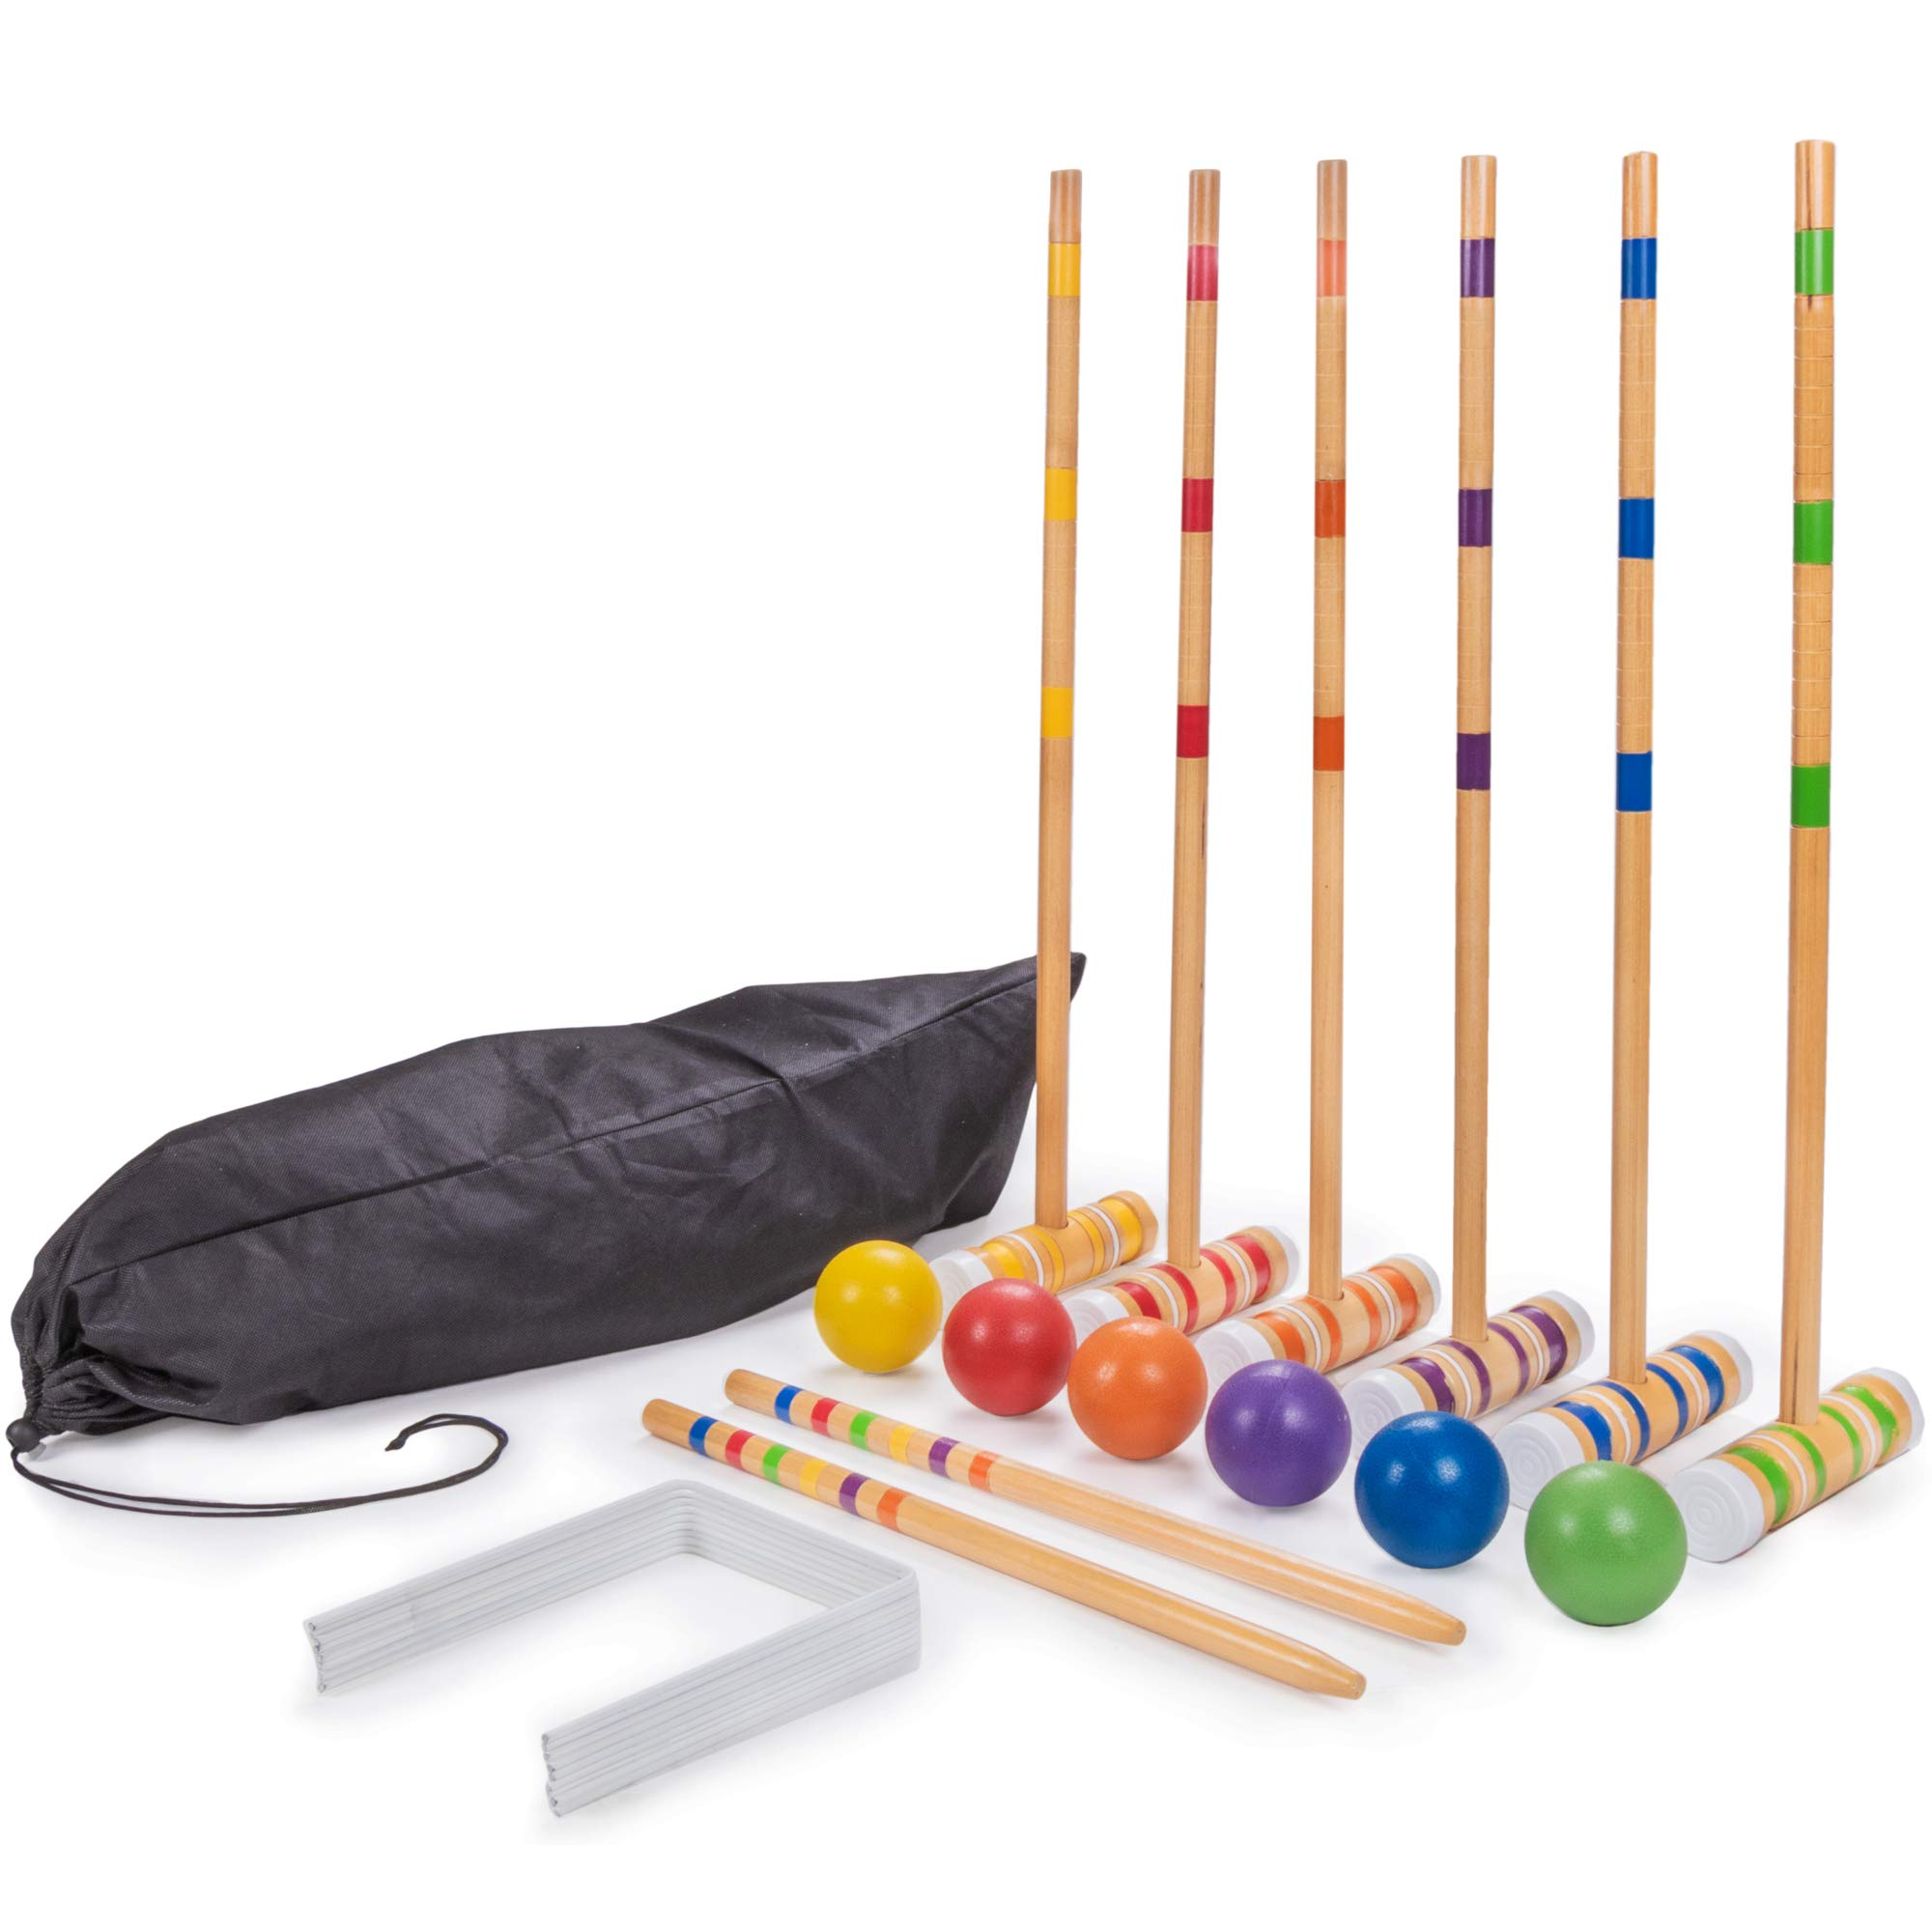 Crown Sporting Goods Six-Player Travel Croquet Set with Drawstring Bag | Family-Sized Set of 6 Wooden Mallets, 6 Colored Balls, 9 Wickets, 2 Stakes | Classic Family Yard, Lawn, Outdoor Games by Crown Sporting Goods